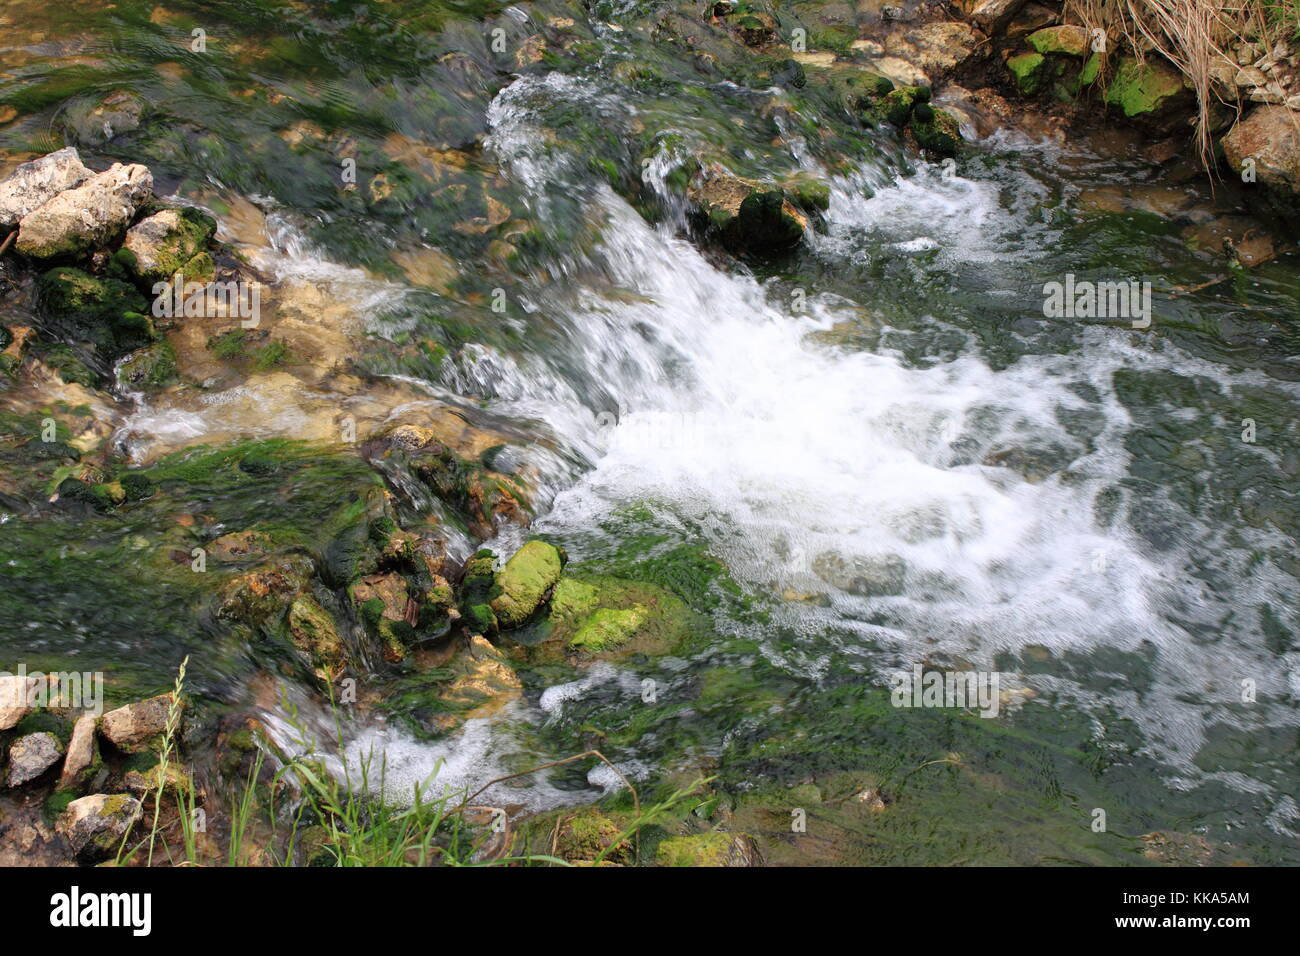 Rapids on a river - Stock Image